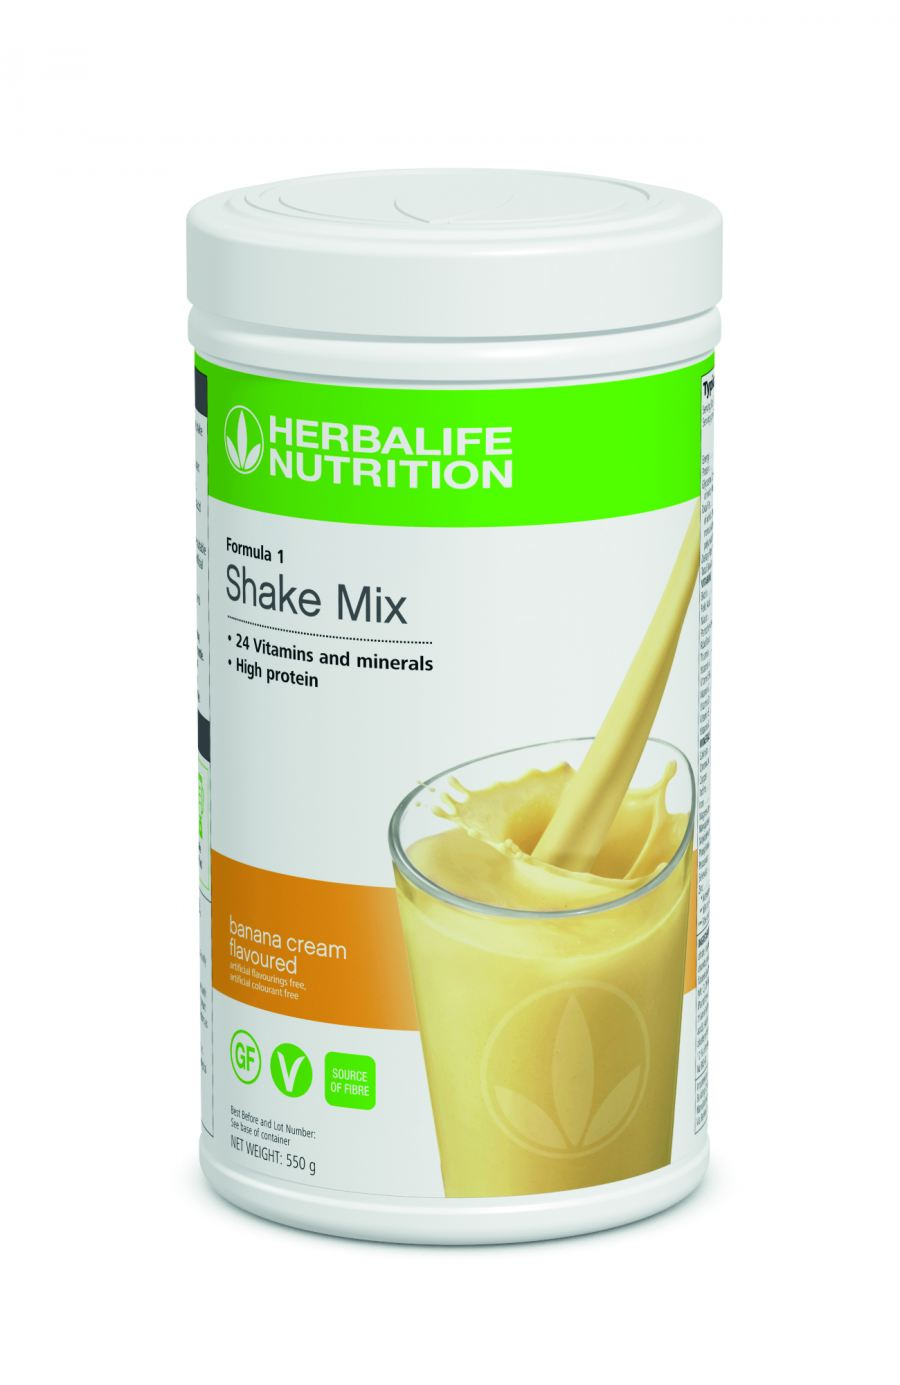 Herbalife Nutrition South Africa launches new Formula 1